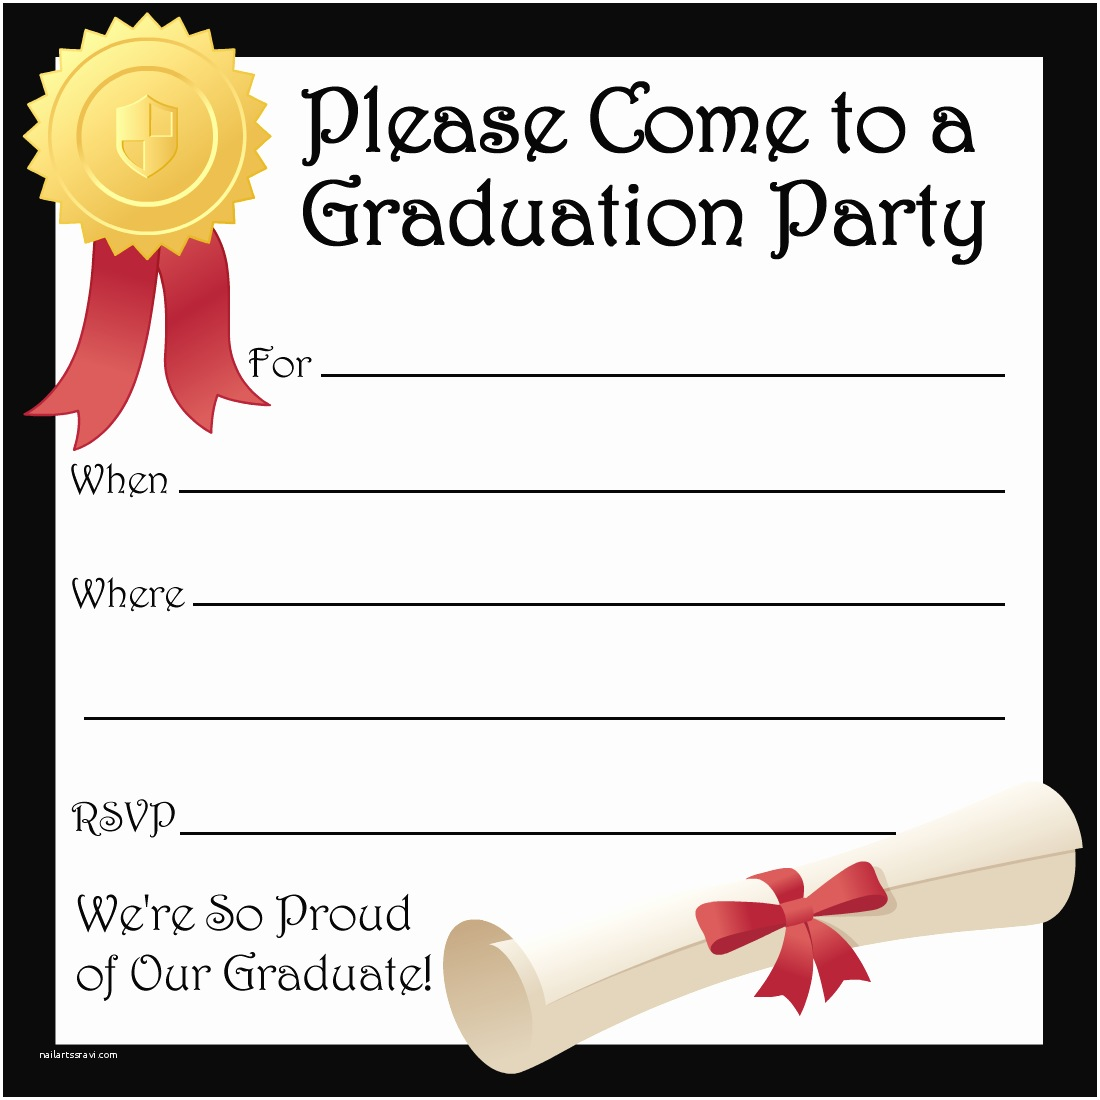 Examples Of Graduation Invitations Free Printable Graduation Party Invitations